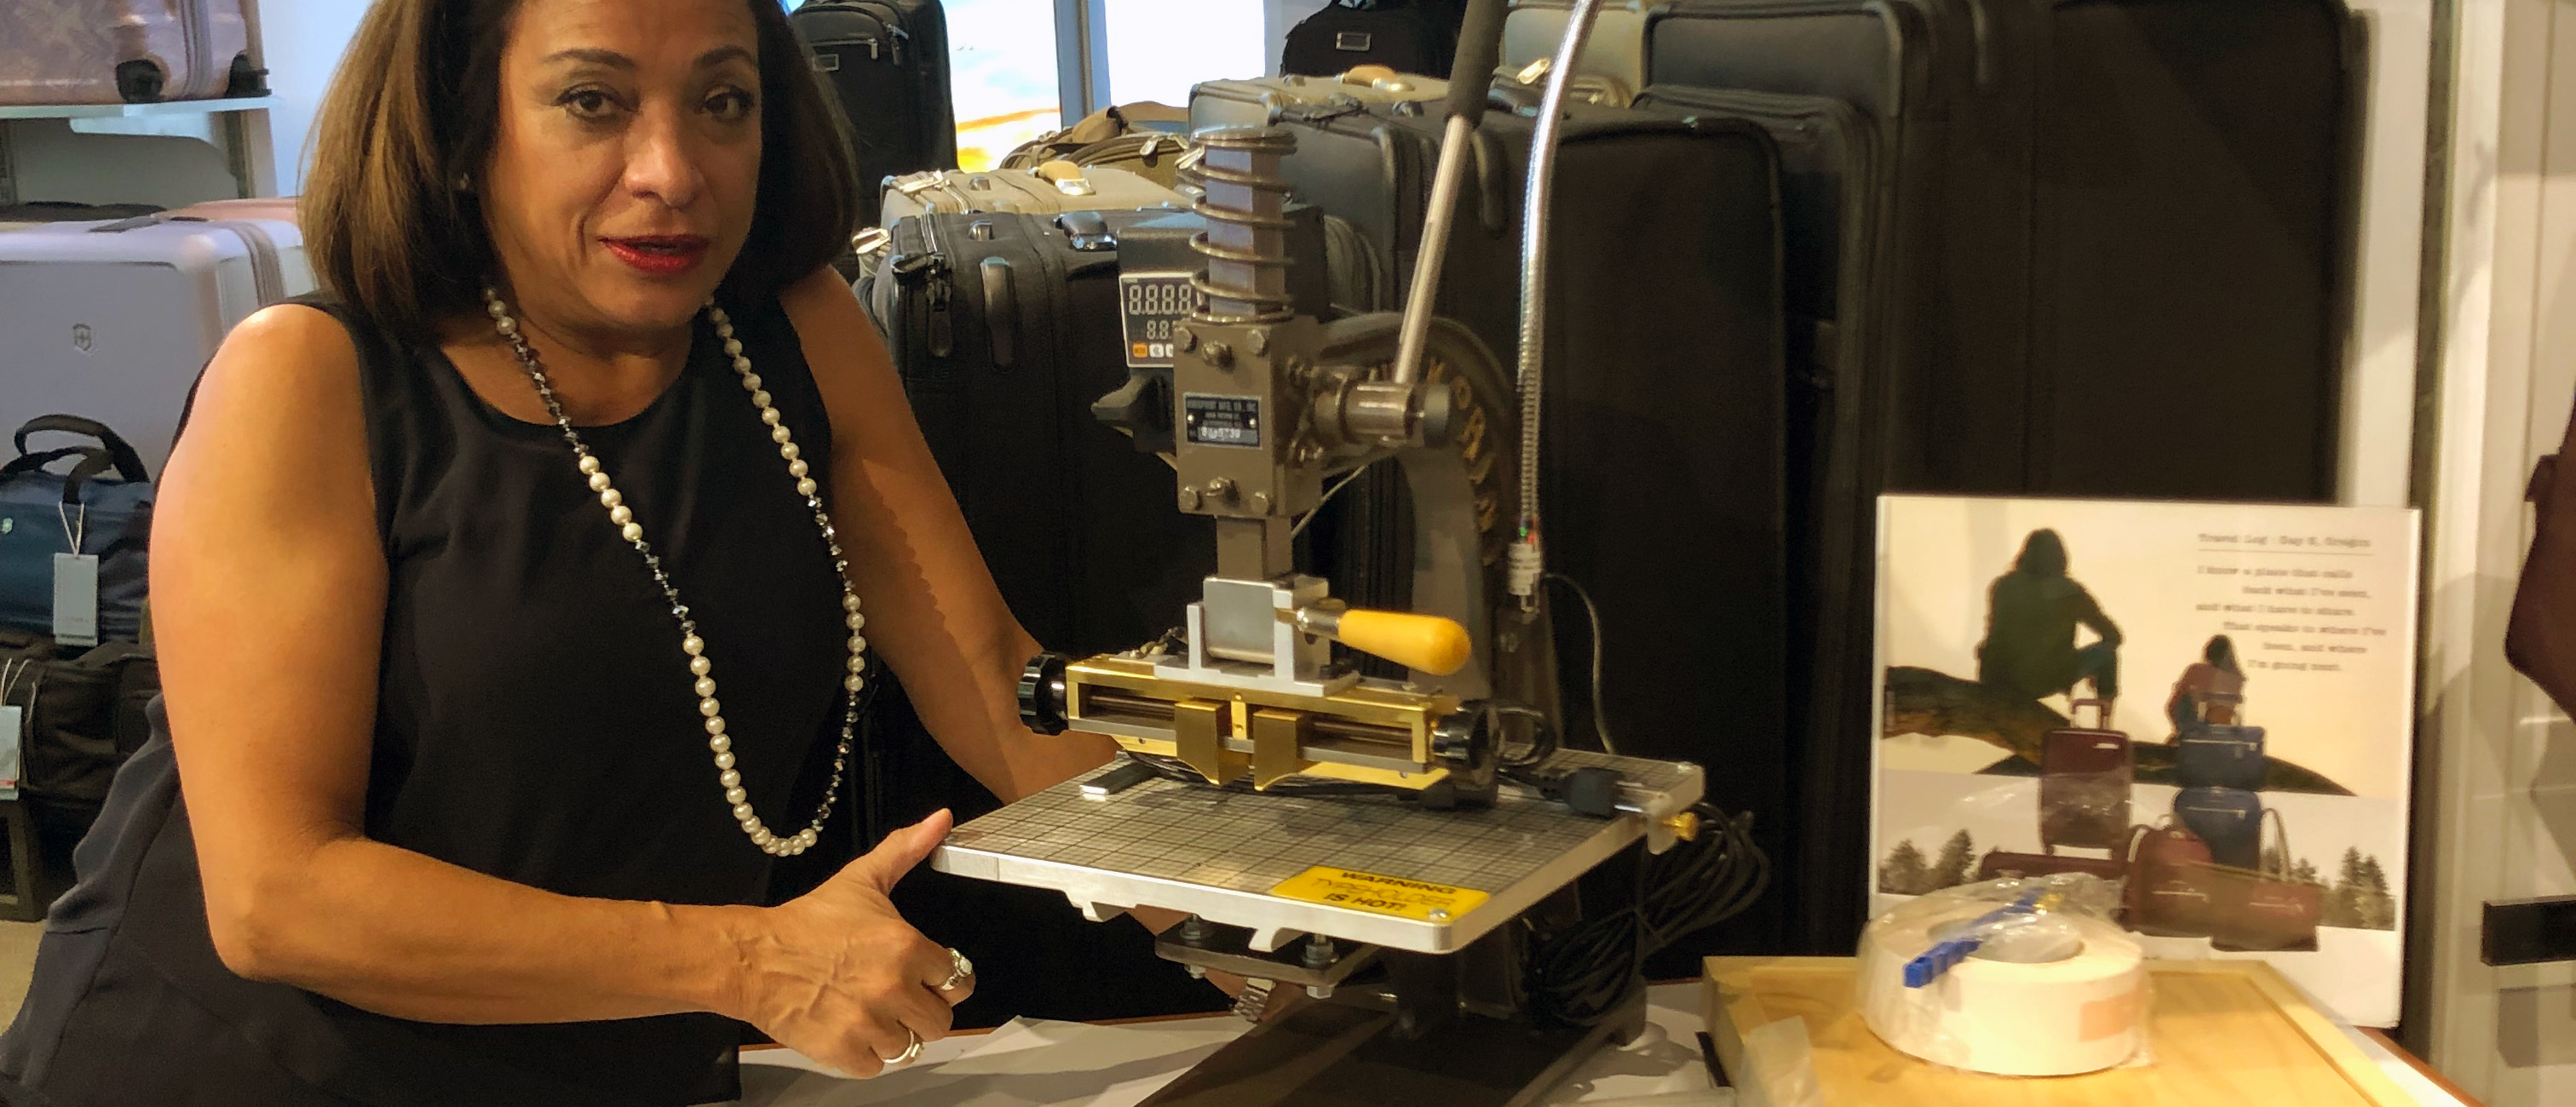 store manager at Innovation Luggage poses with engraving machine